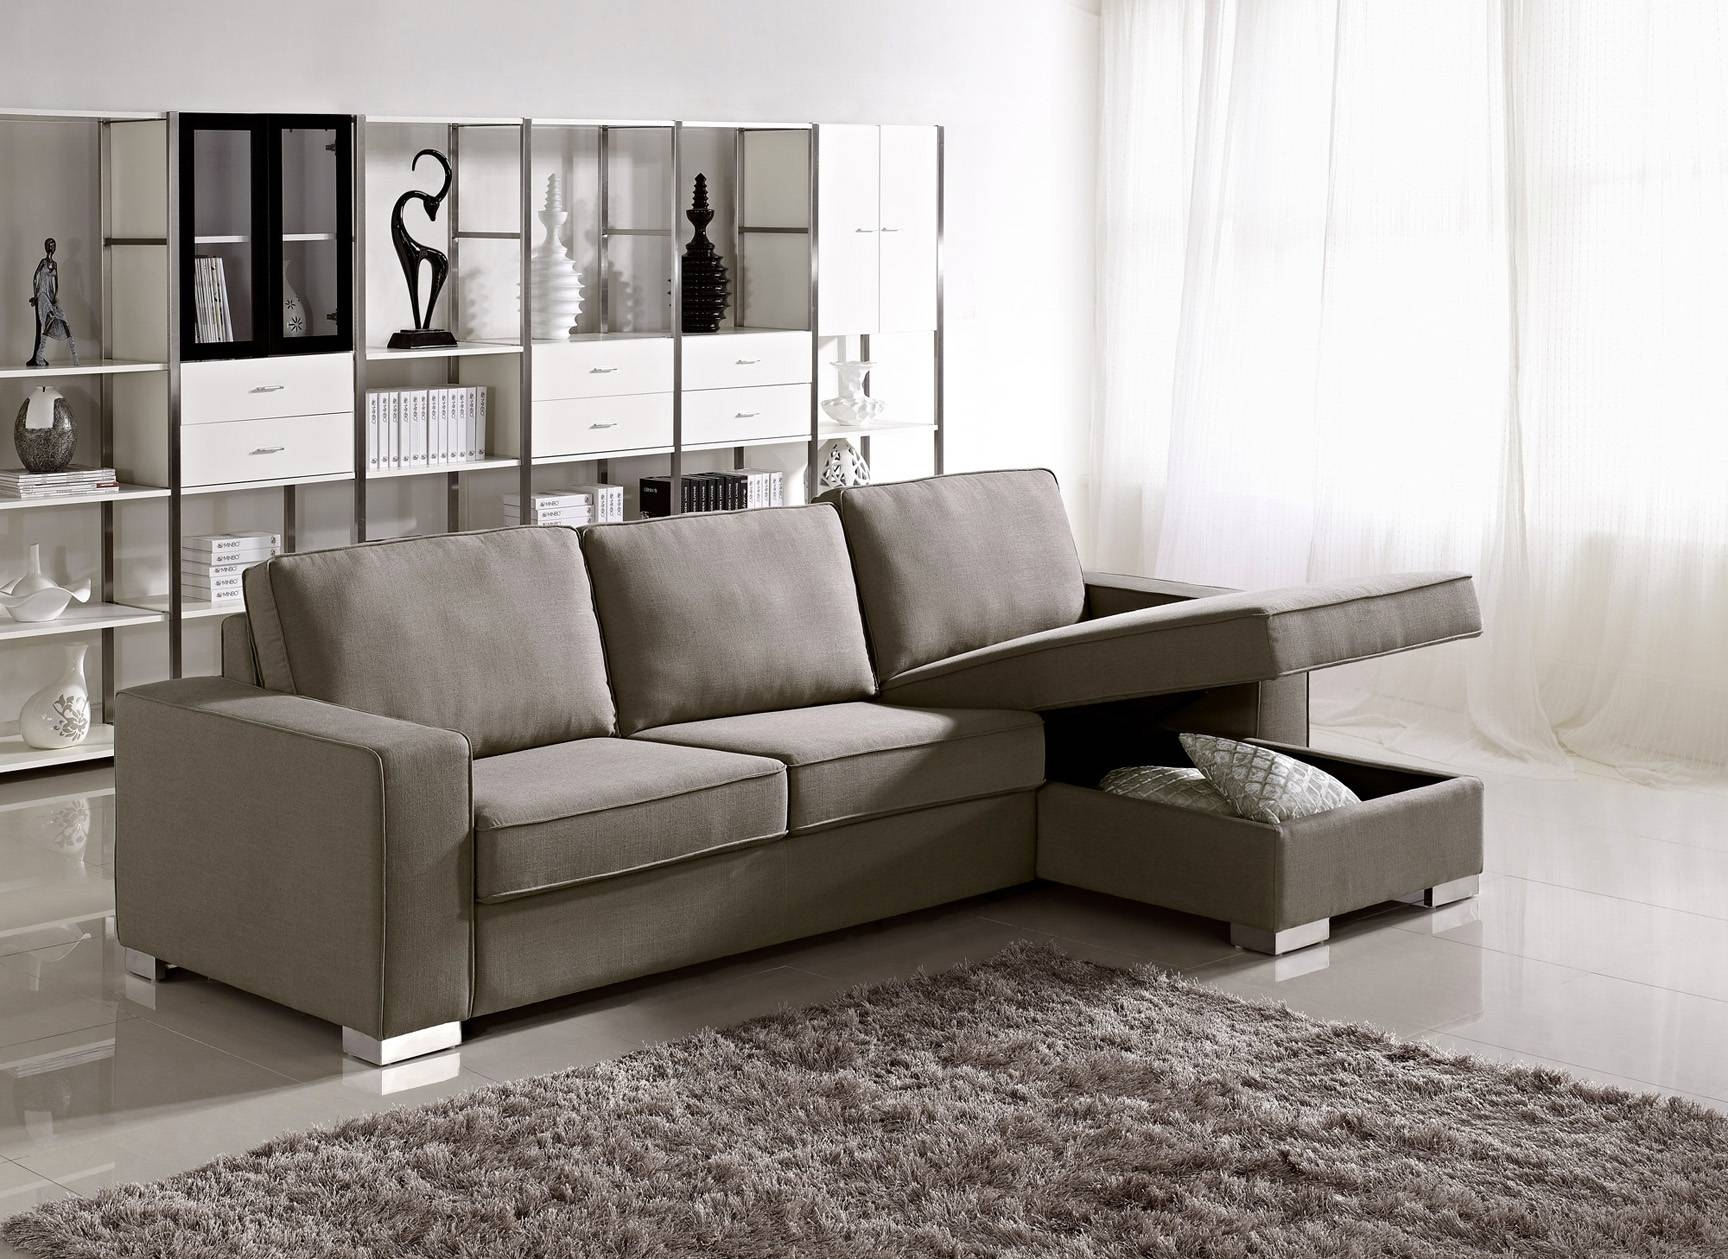 Small Sectional Sofa With Chaise Lounge   Tourdecarroll Regarding Small Sofas With Chaise Lounge (Photo 5 of 15)